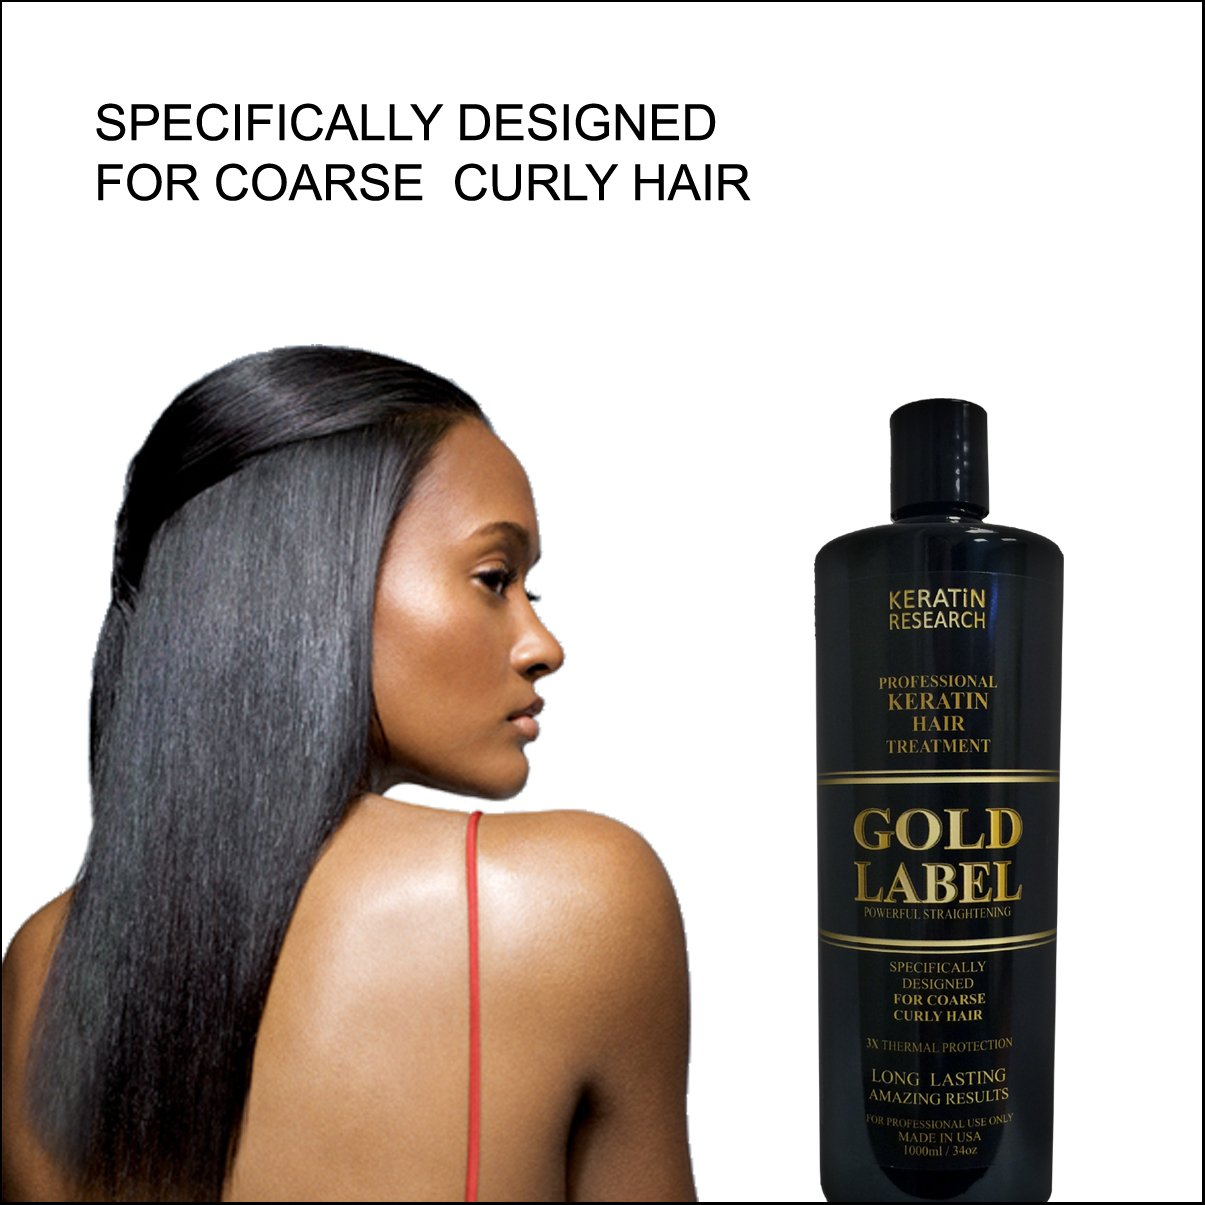 Gold Label Professional Keratin blowout Treatment Super Enhanced Formula Specifically Designed for Coarse Curly Black, african, Dominican and Brazilian Hair types 1000ml by Keratin Research (Image #1)